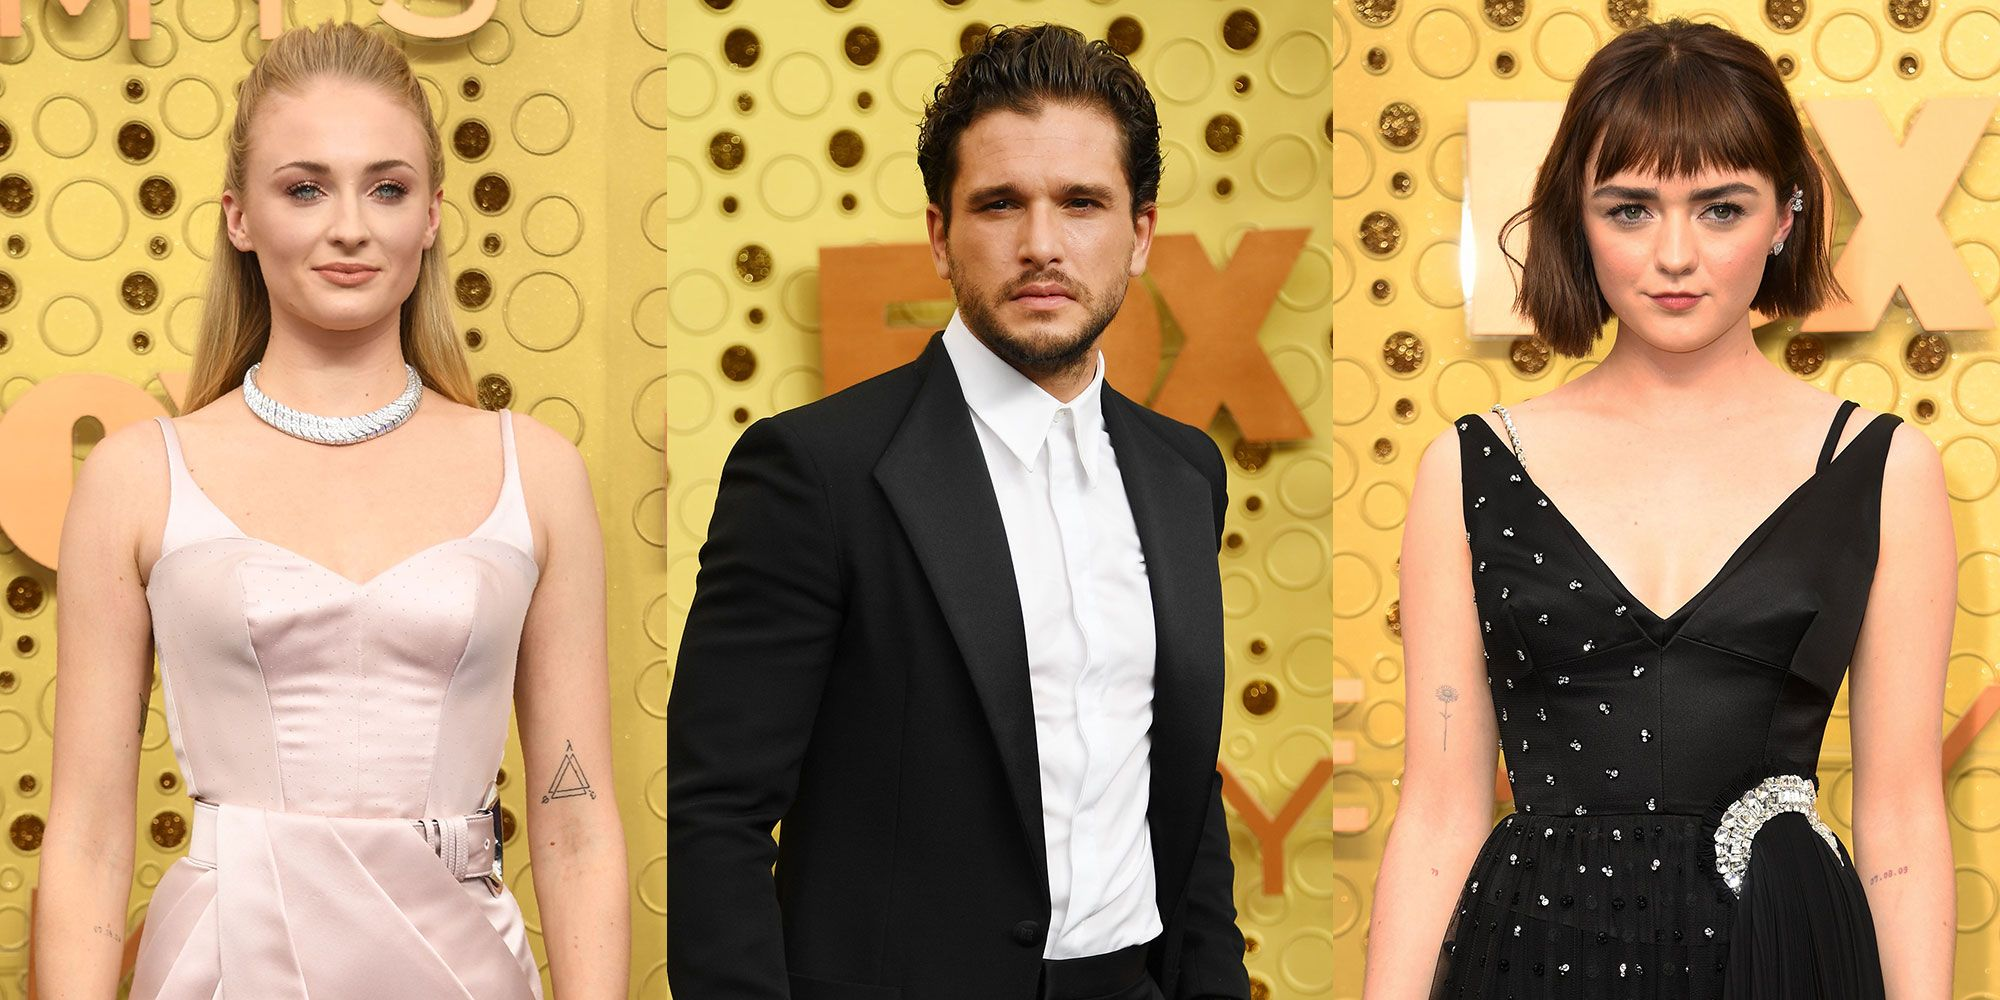 The 'Game of Thrones' Cast Looks Incredible on the 2019 Emmys Red Carpet